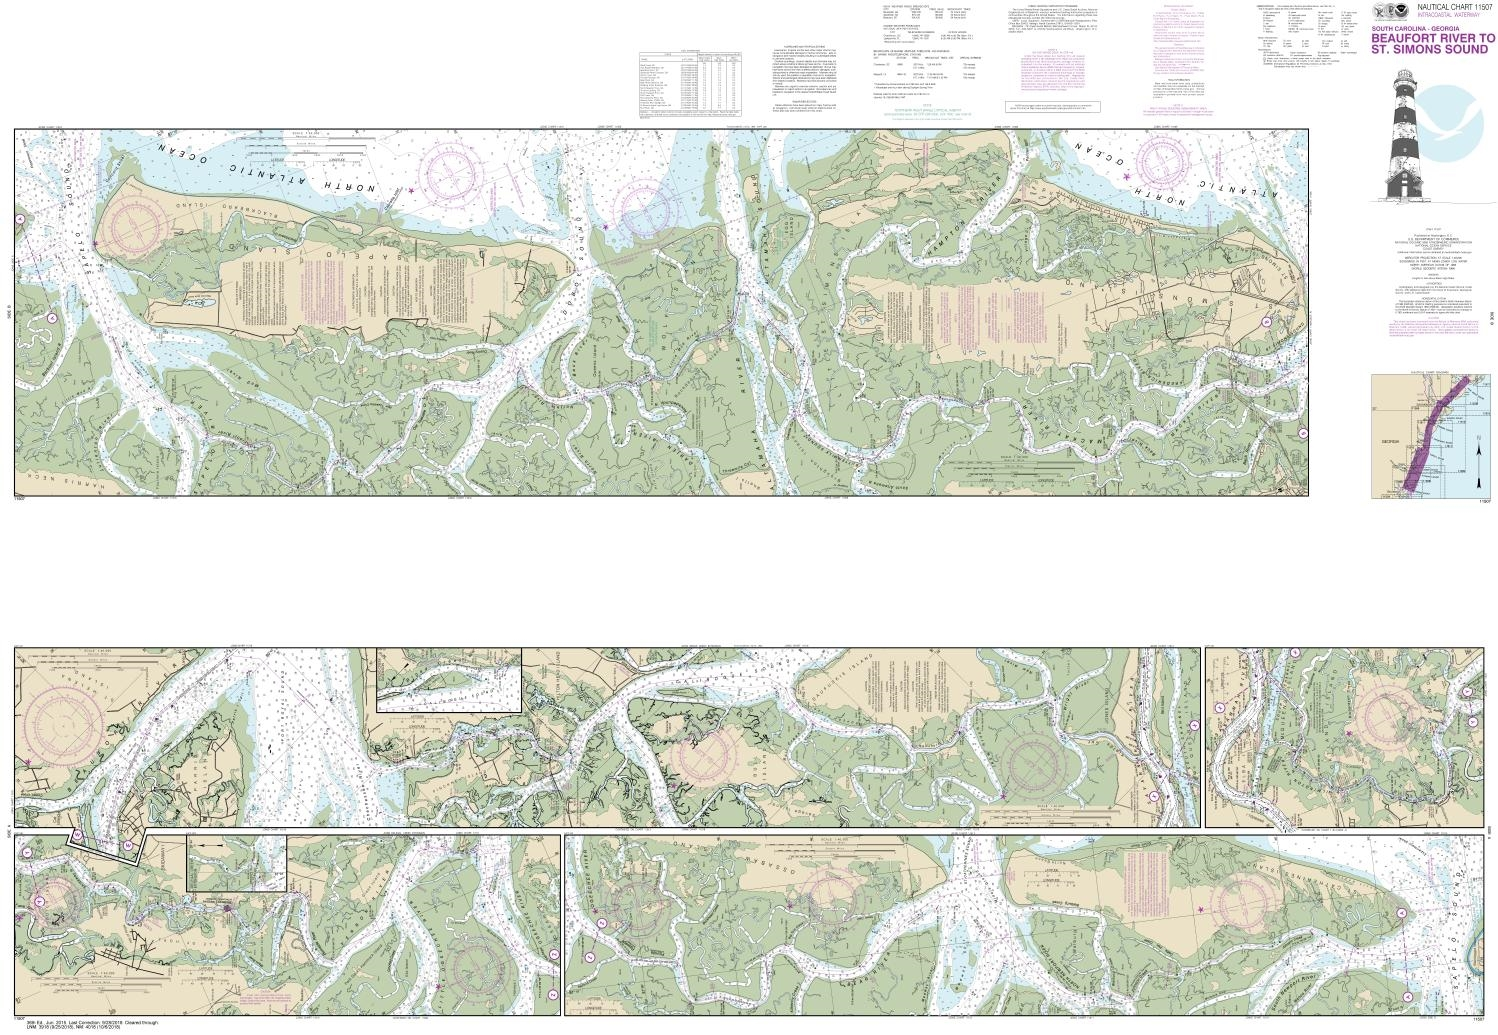 11507 Intracoastal Waterway Beaufort River to St Simons Sound - East Coast  Nautical Chart